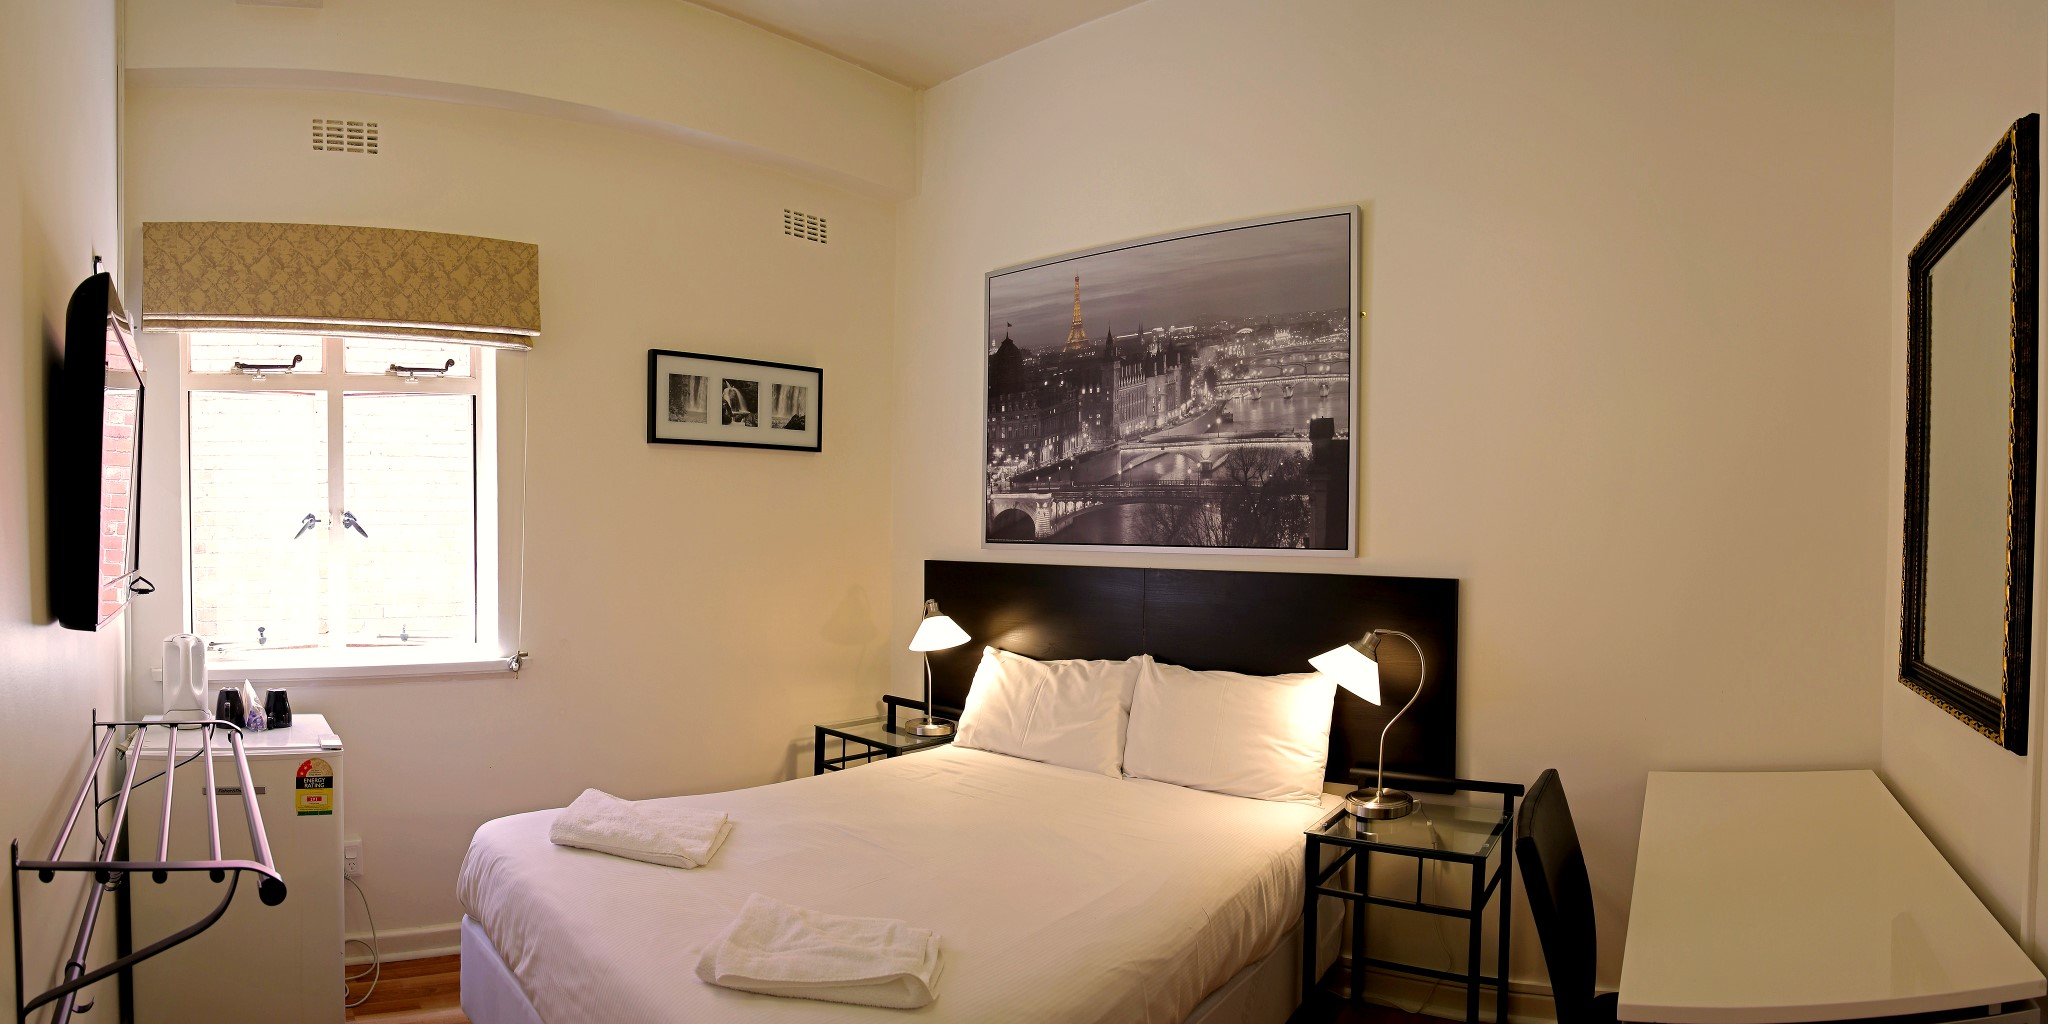 Double Room for 1 or 2 people - click to see an enlarged version of this image